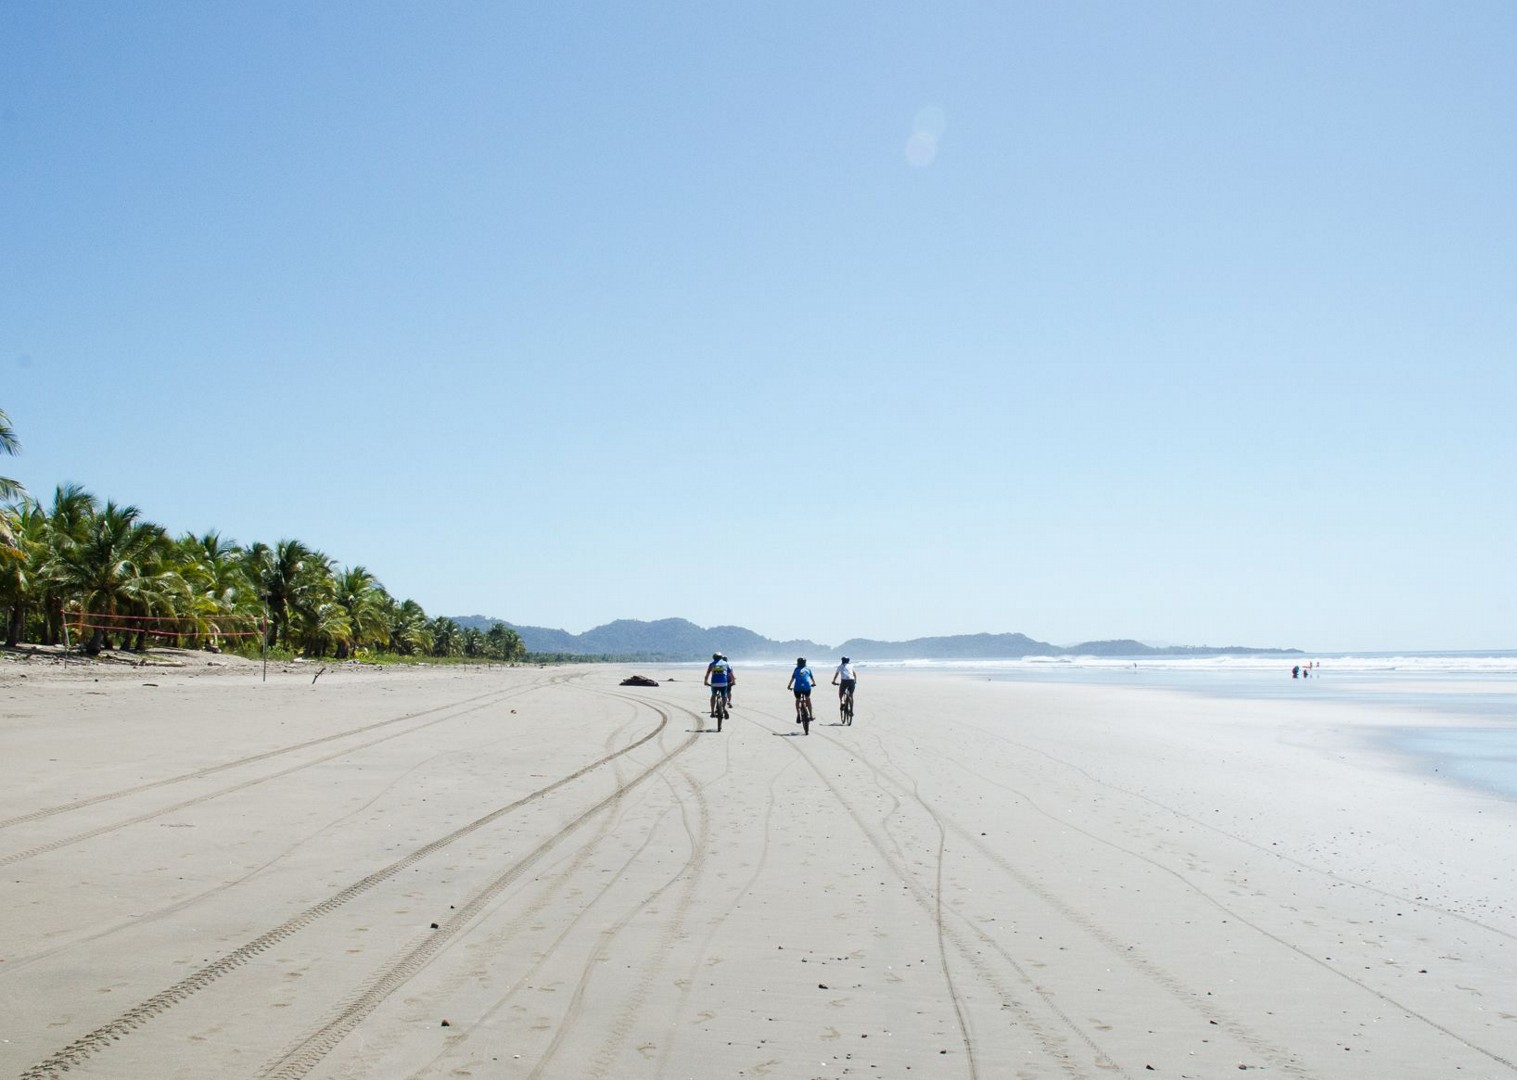 beach-cycling-costa-rica-guided-family-cycling-holiday.jpg - Costa Rica - Volcanoes and Valleys - Guided Family Cycling Holiday - Family Cycling